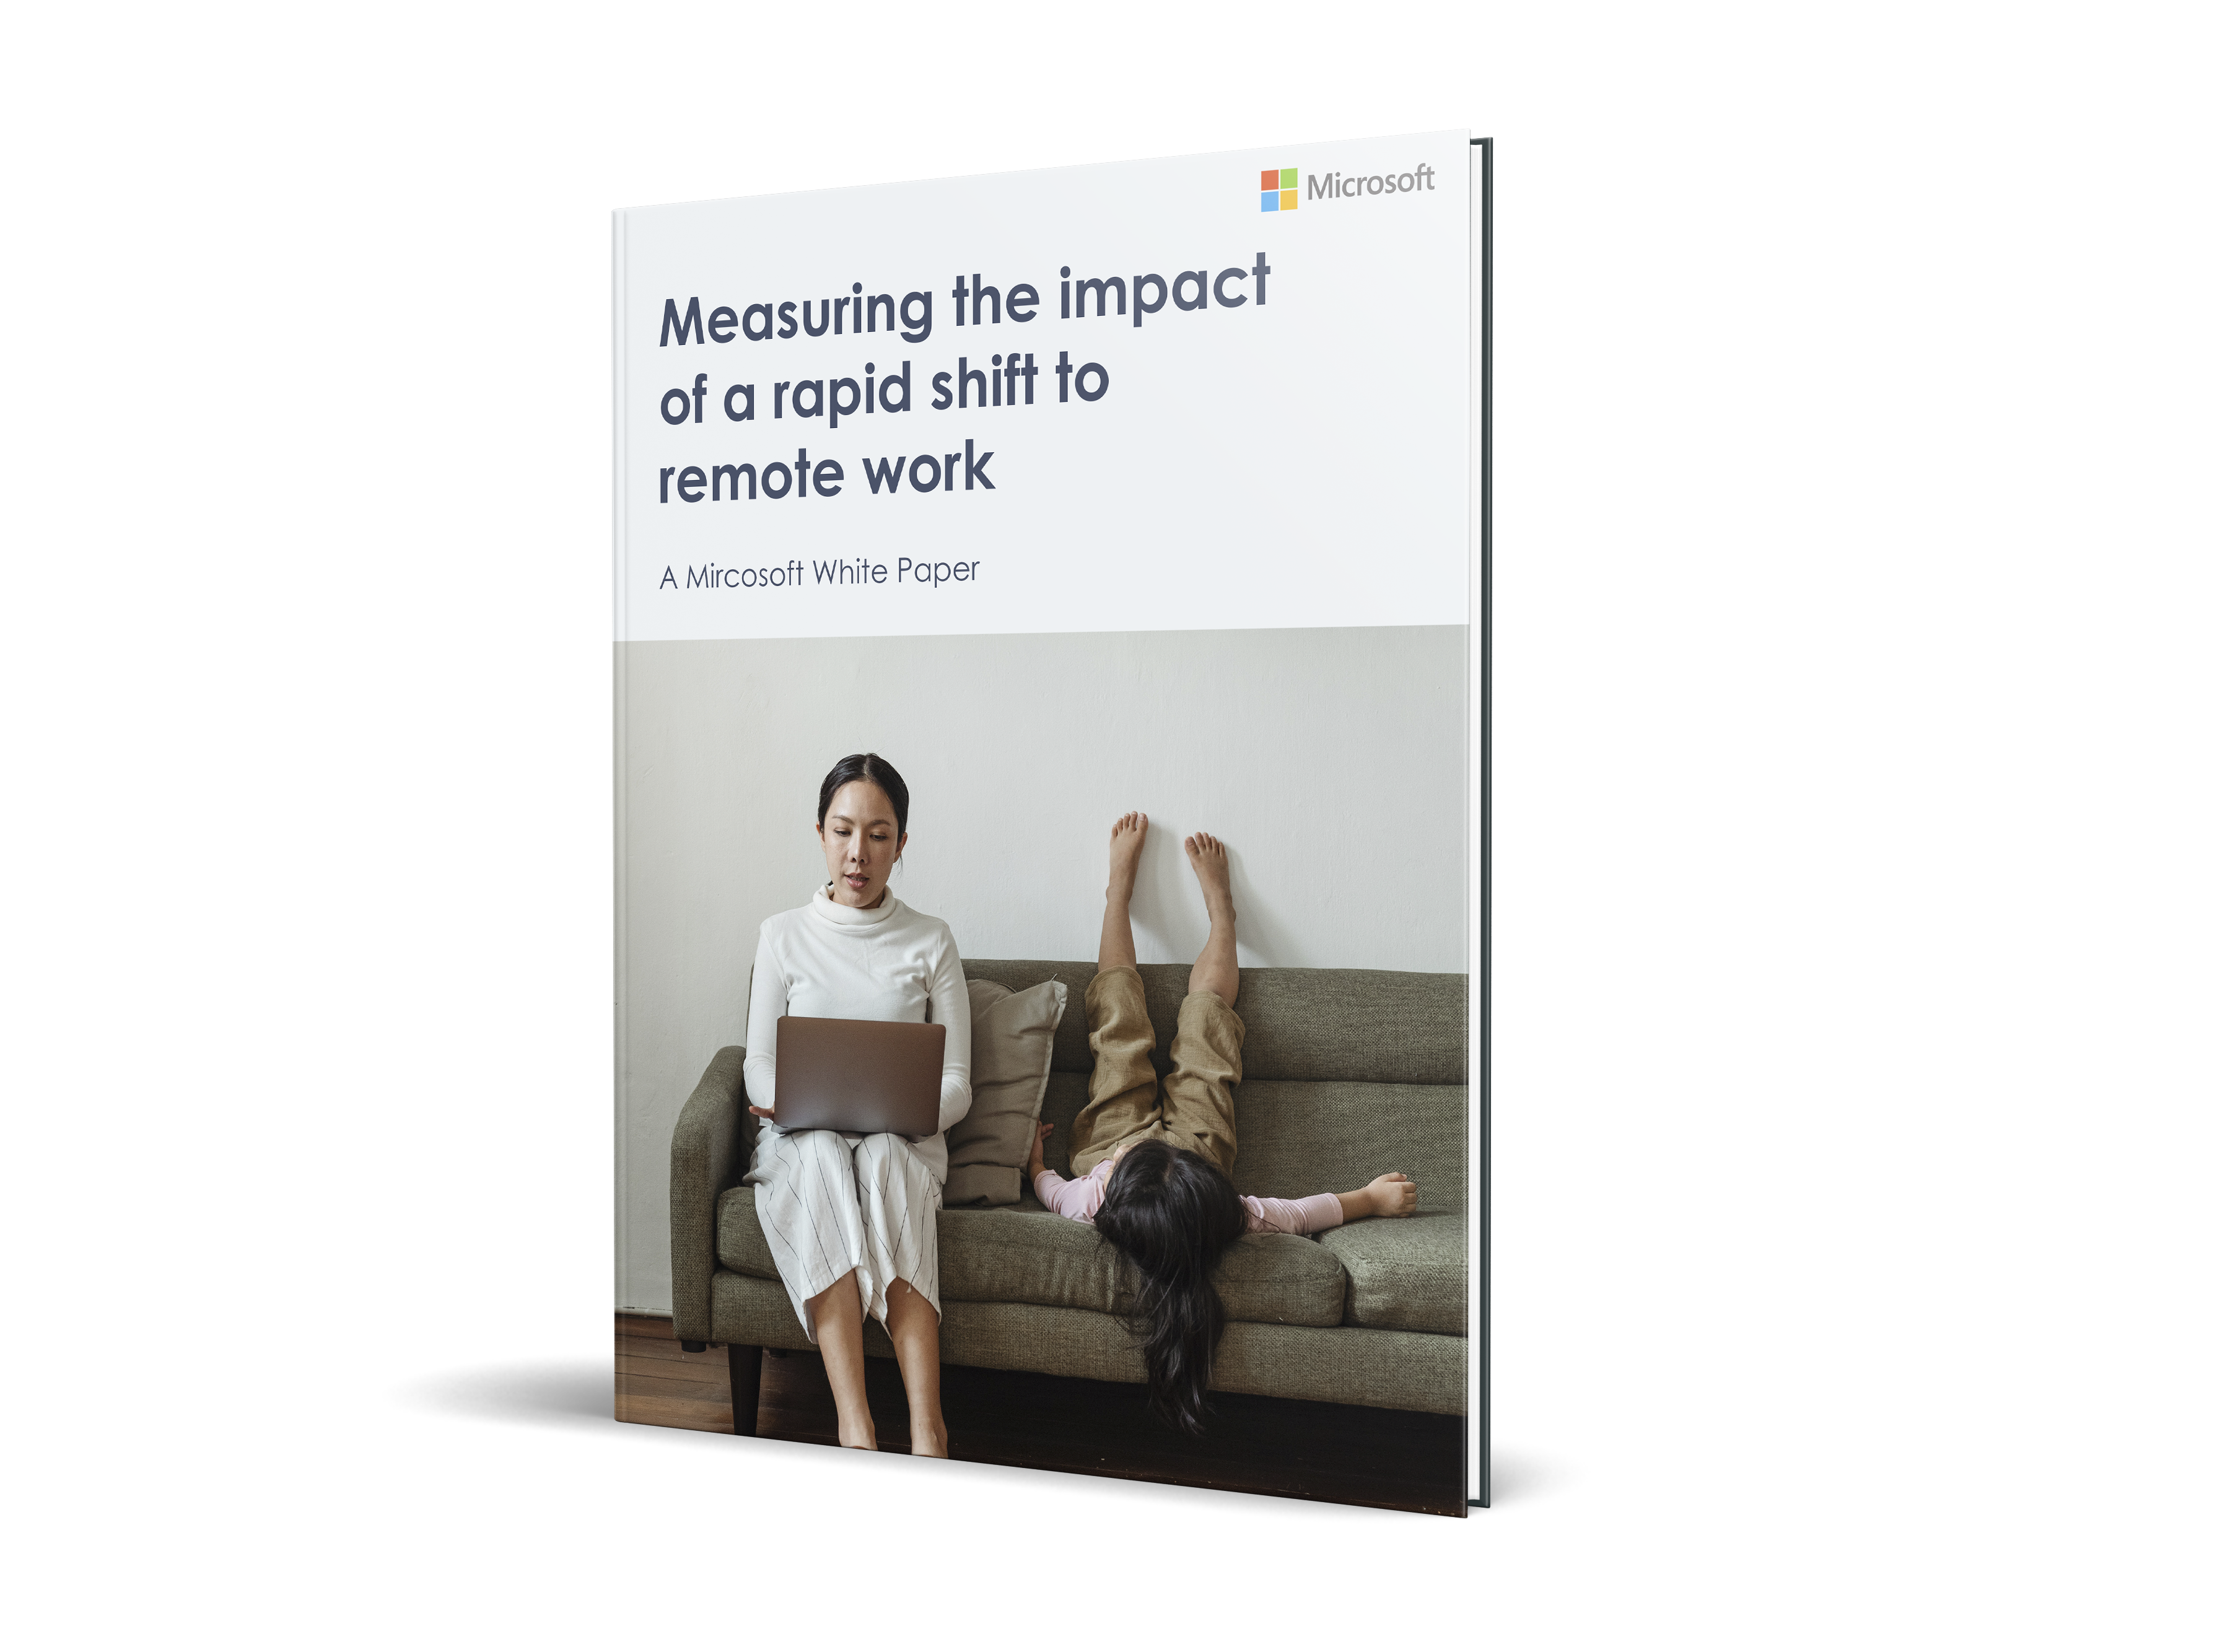 Measuring the impact of a rapid shift to remote work